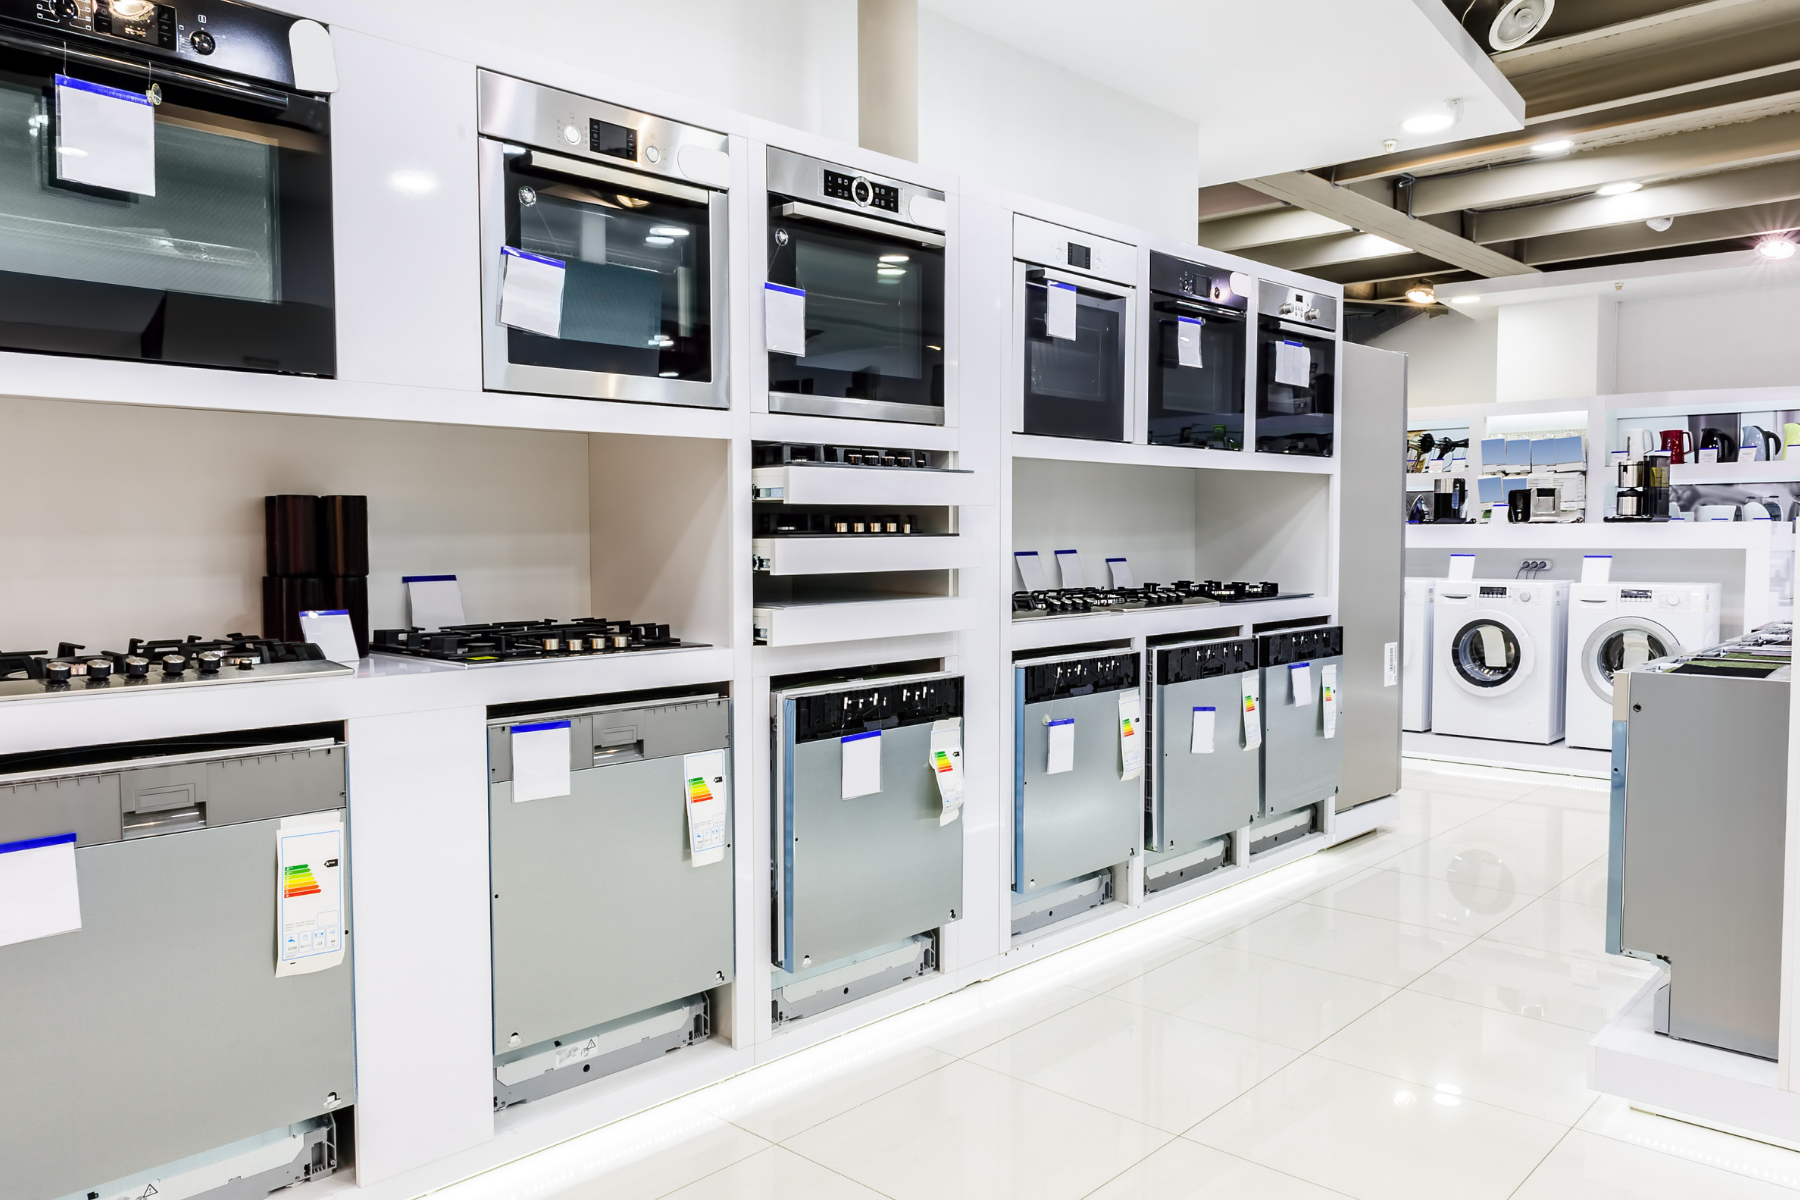 appliances in store showing appliance shortage